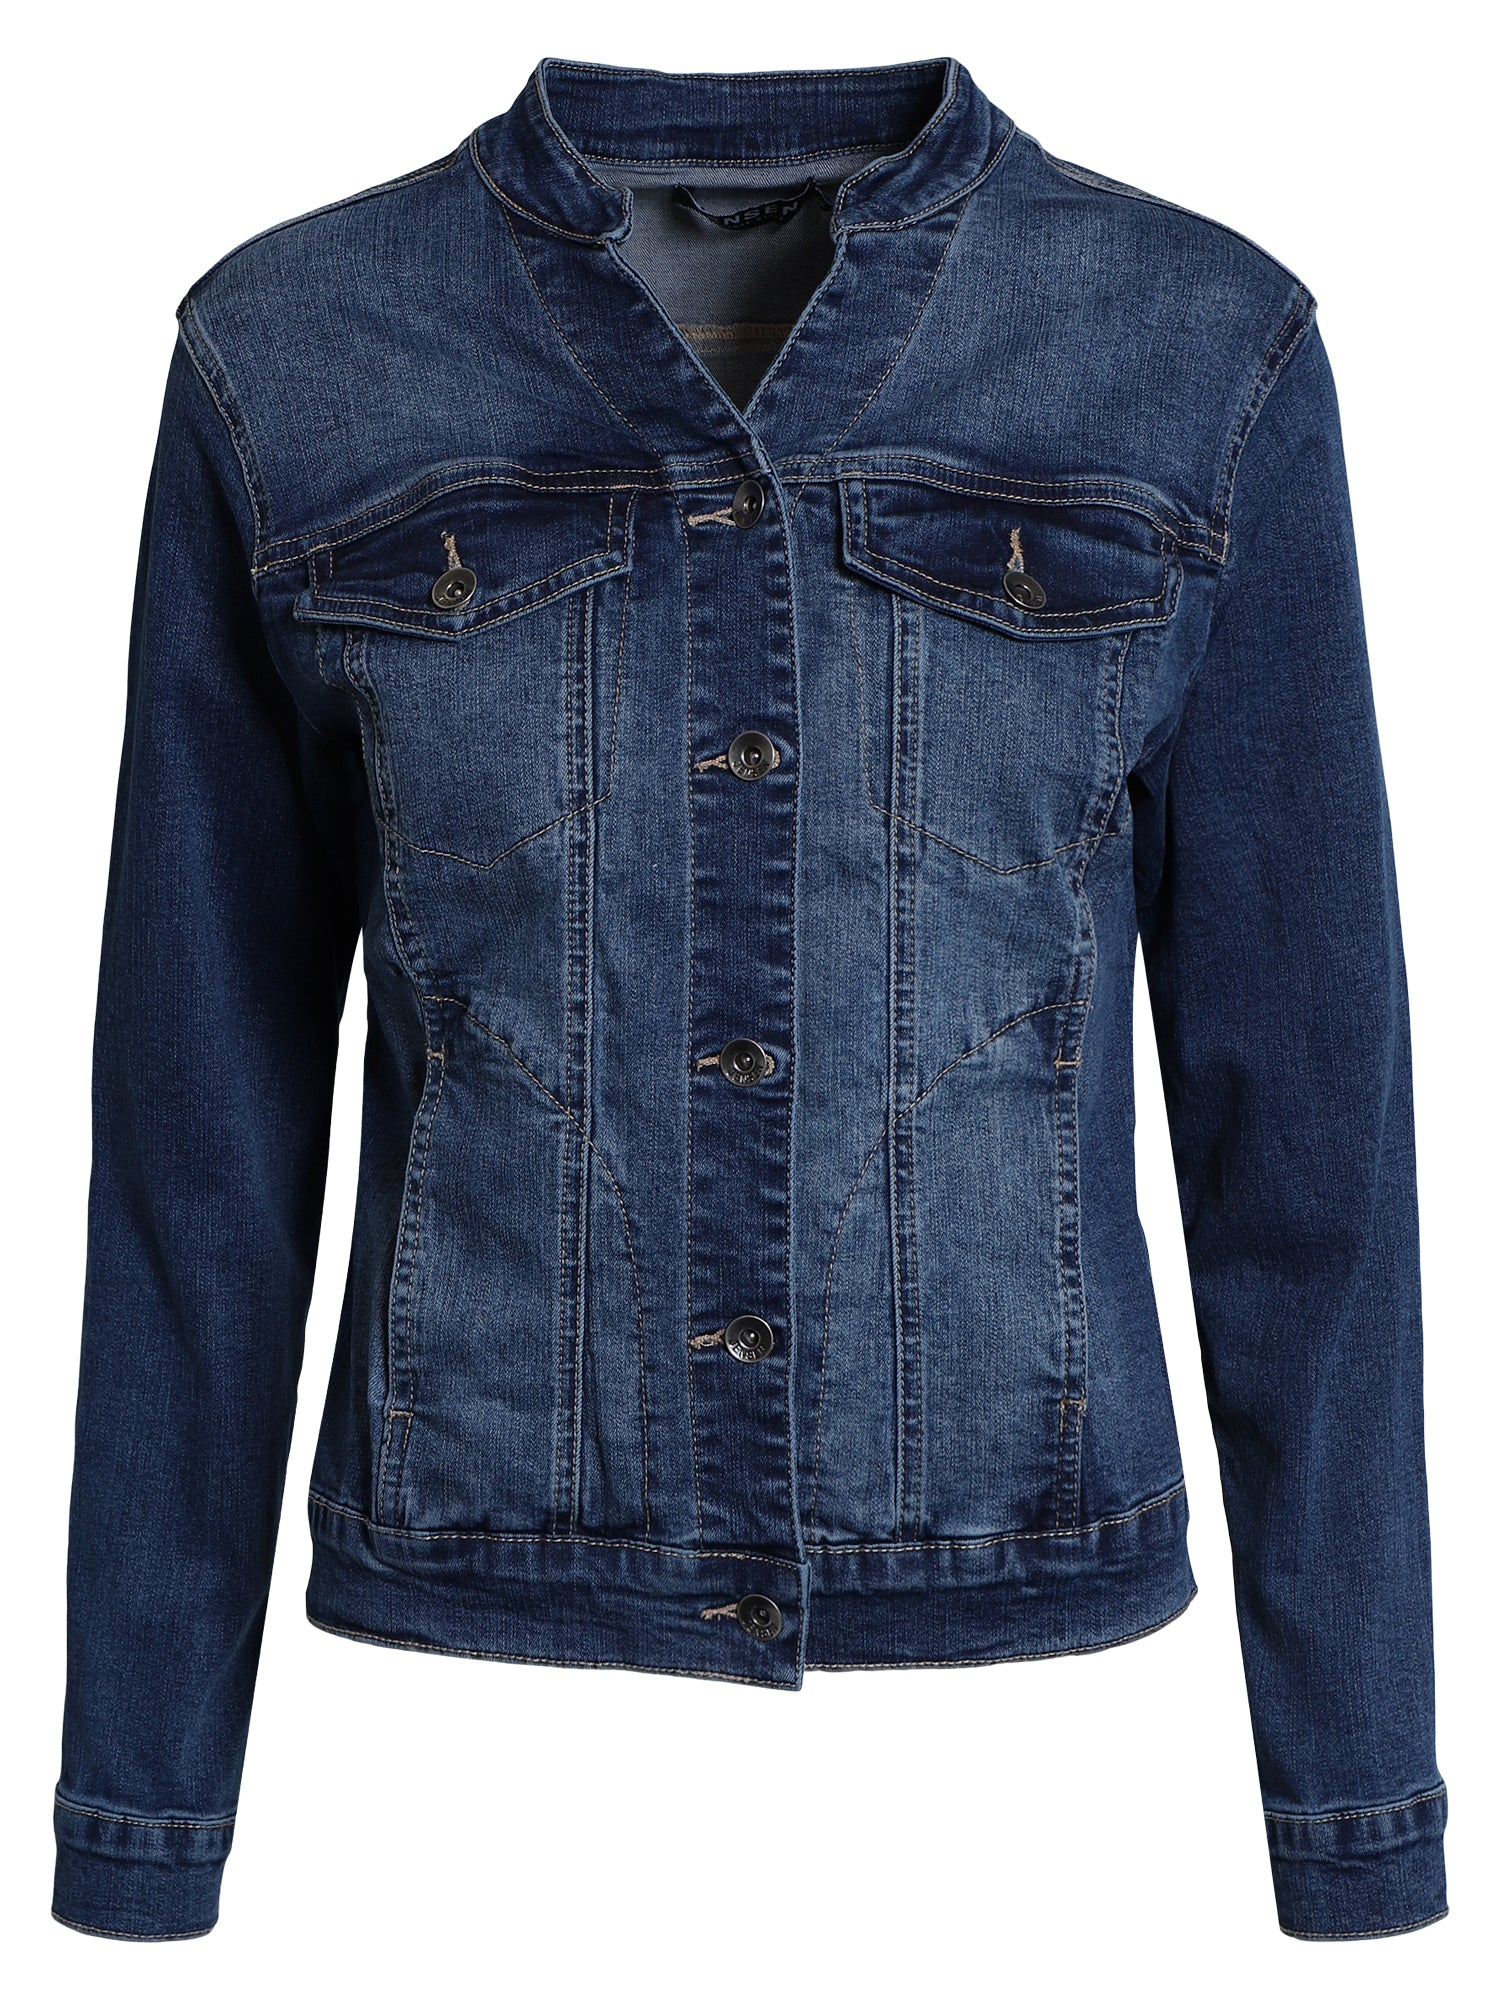 Image of   Denim jakke - denim w. blast